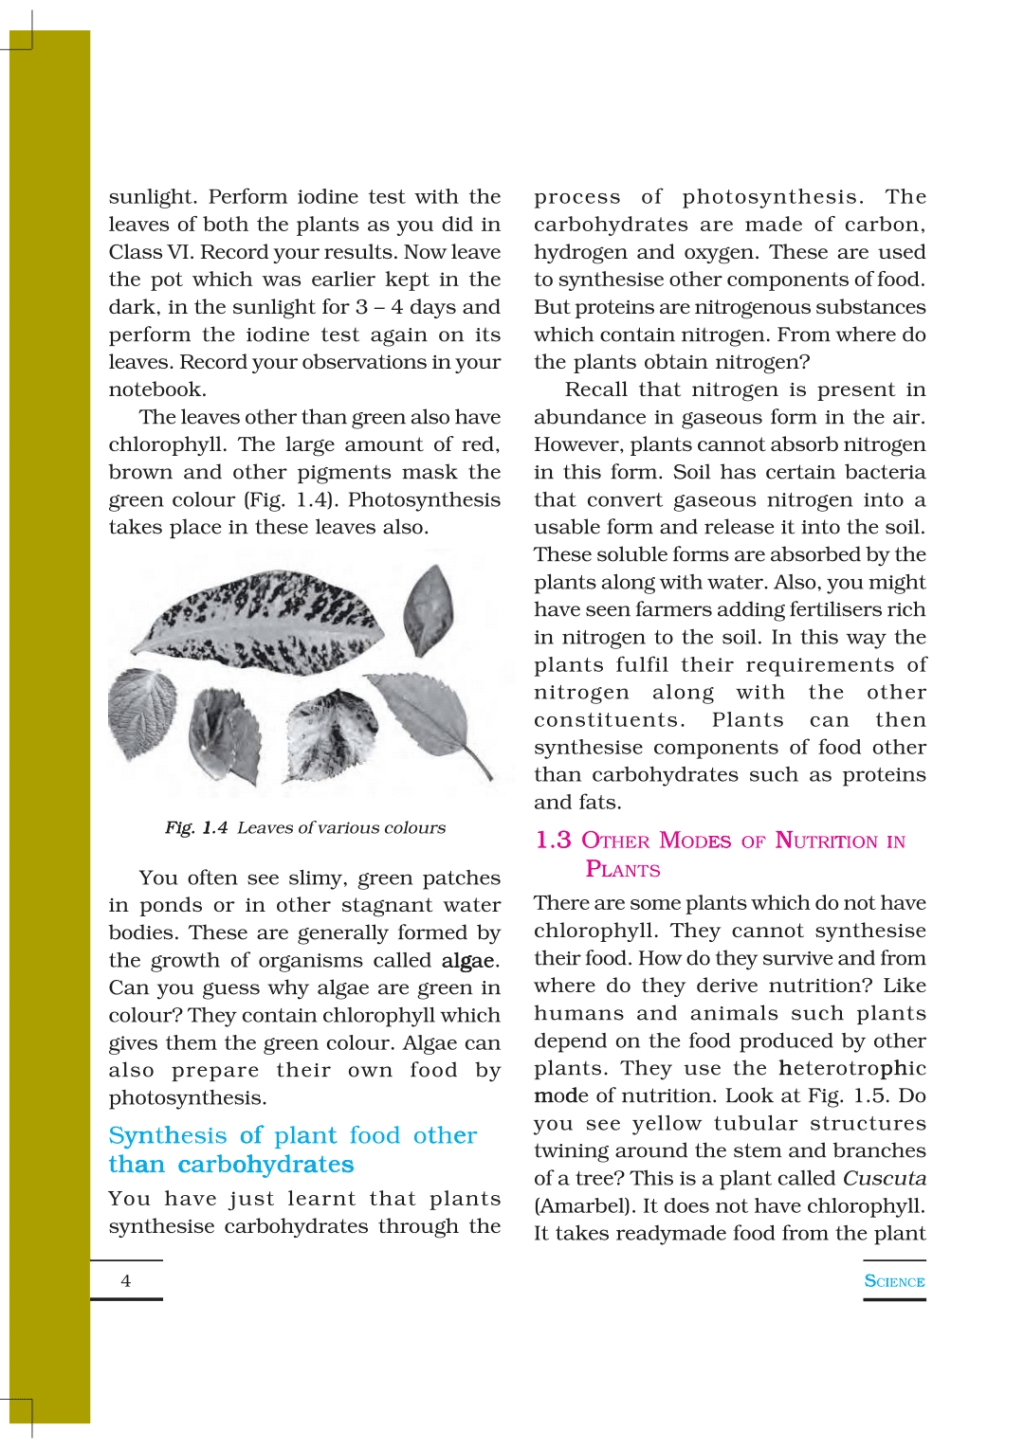 Chapter-1 Nutrition in Plants. Class 7 Notes   EduRev